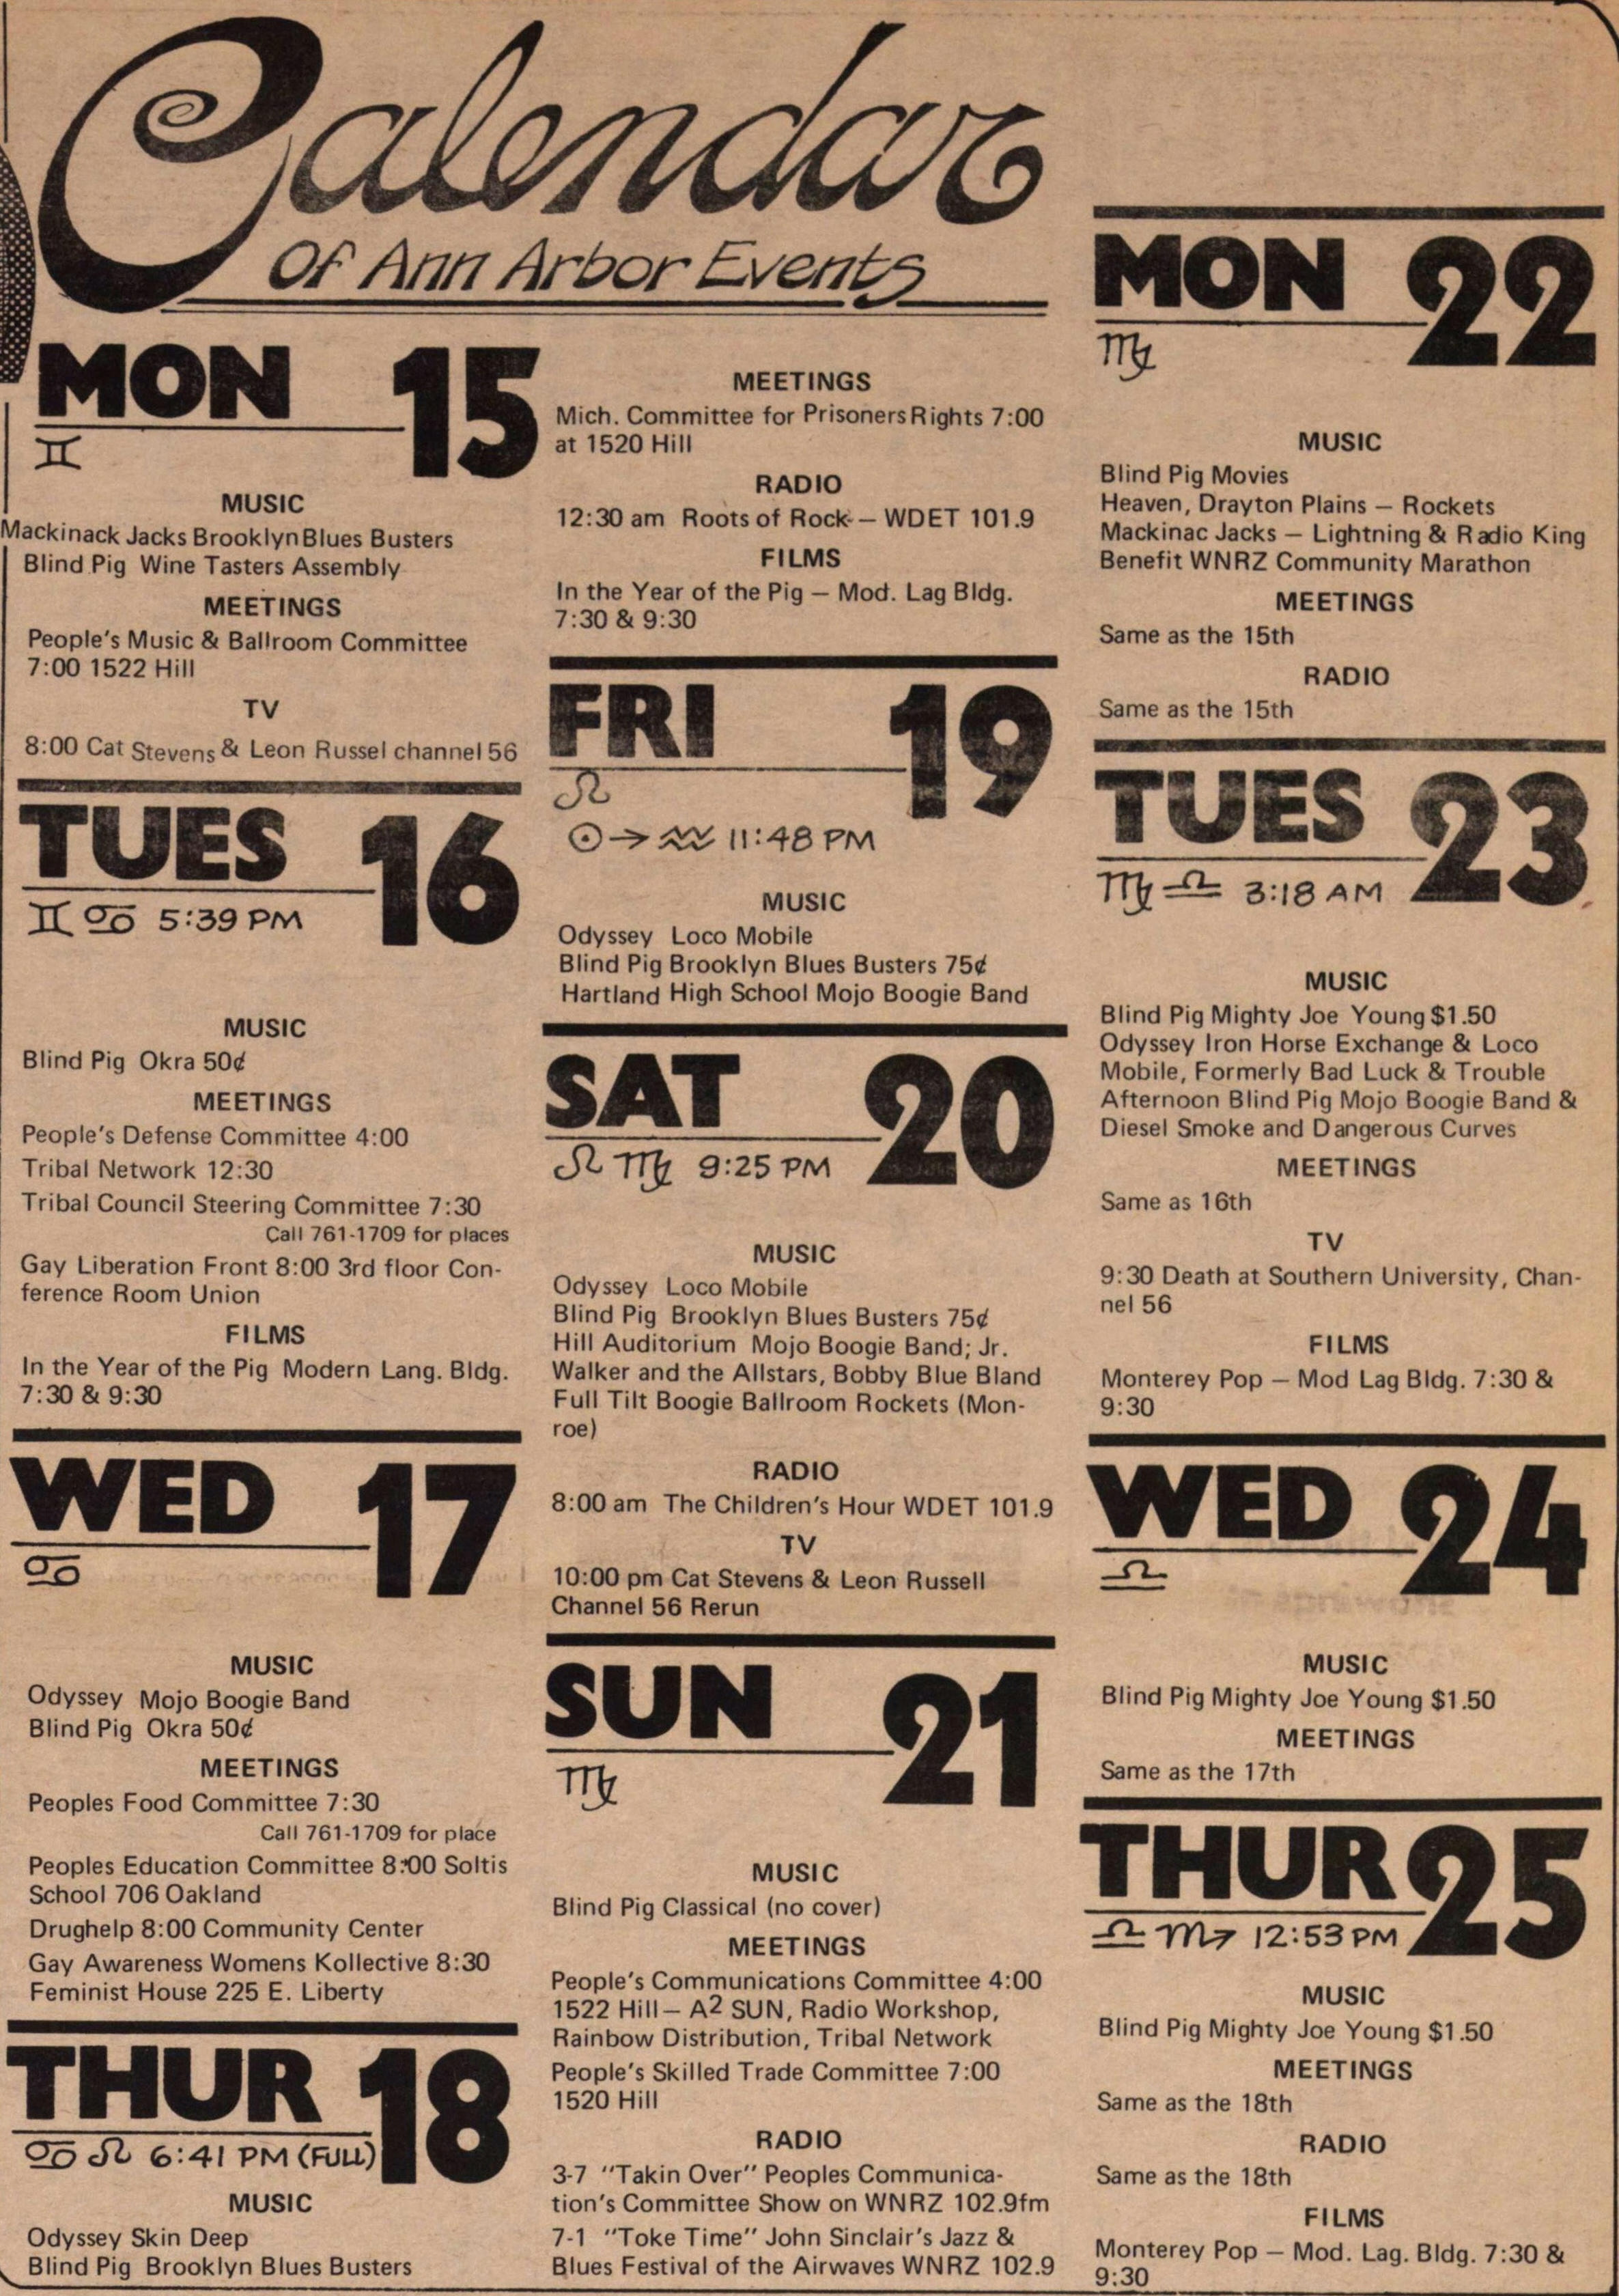 Calendar Of Ann Arbor Events image